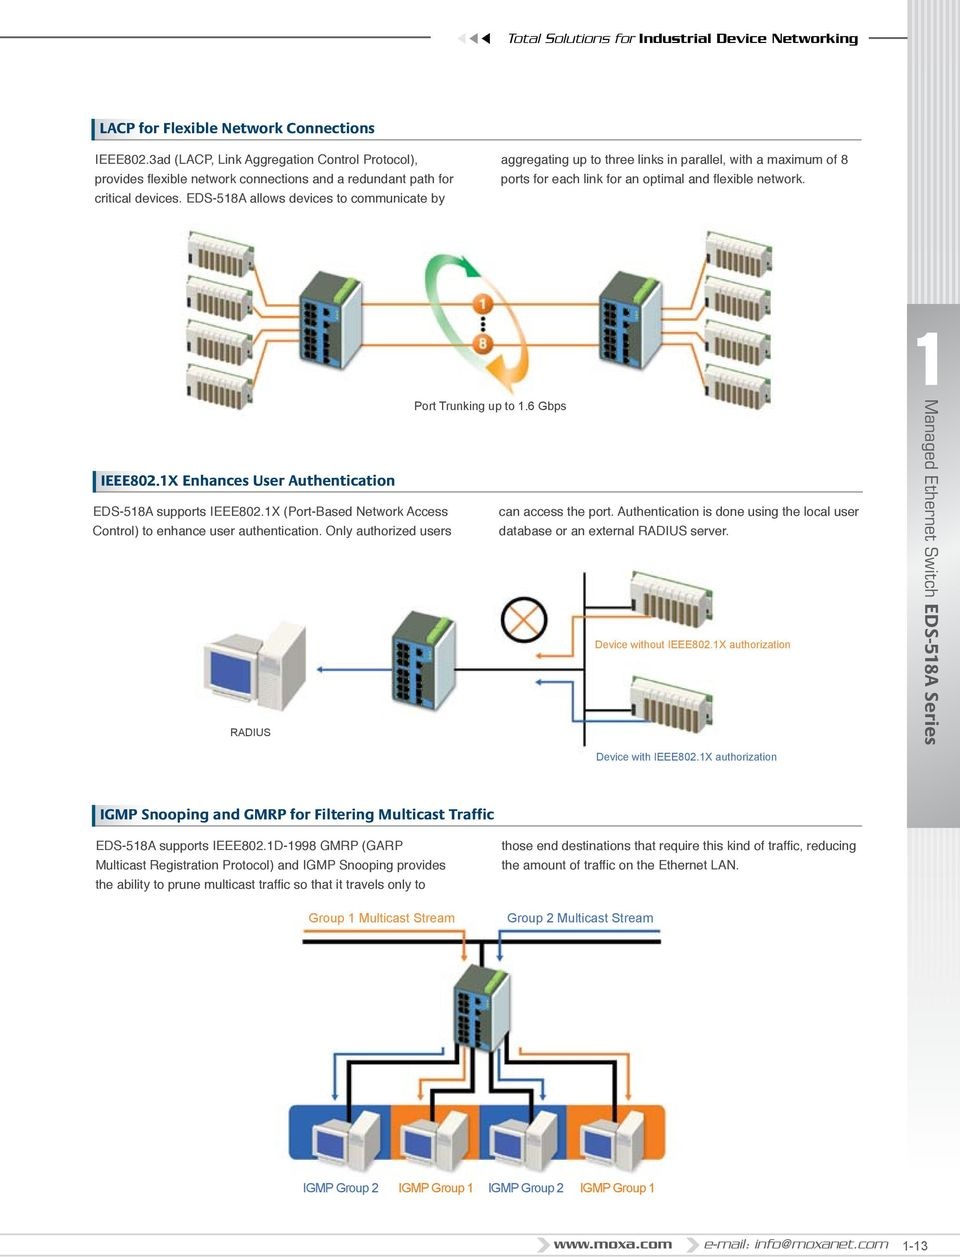 EDS-518A allows devices to communicate by aggregating up to three links in parallel, with a maximum of 8 ports for each link for an optimal and flexible network. Port Trunking up to 1.6 Gbps IEEE802.